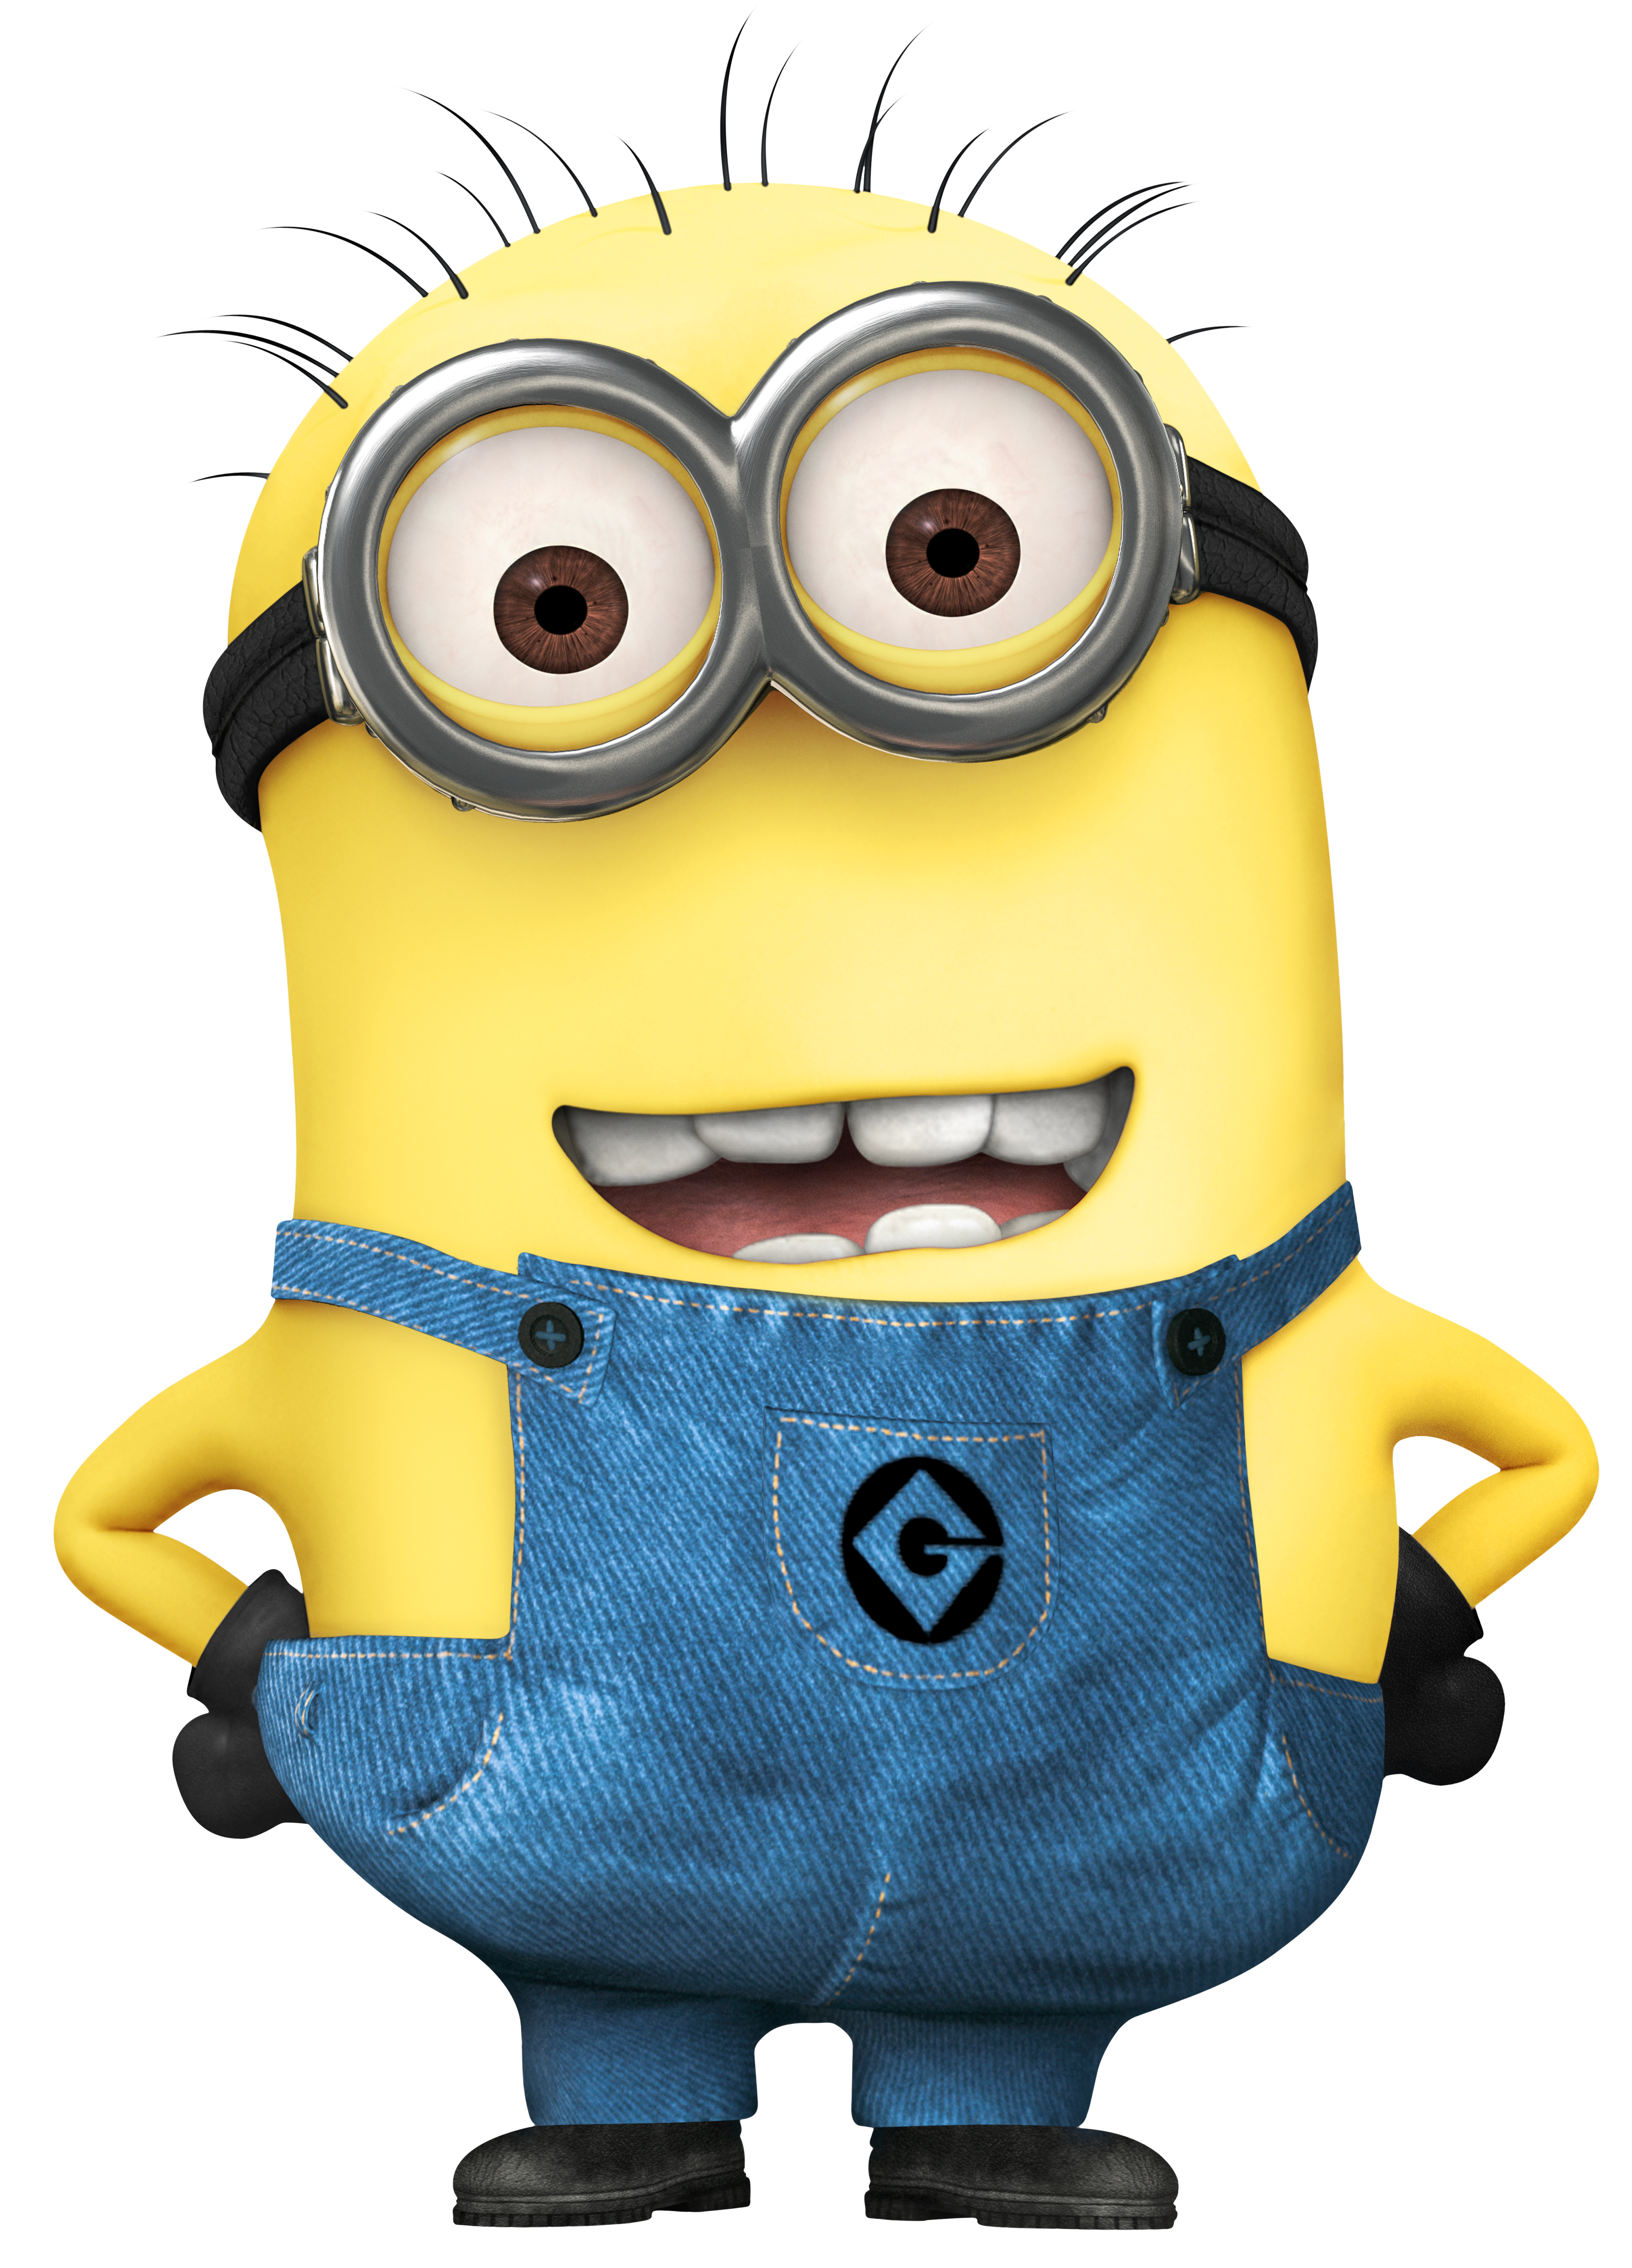 Minions png download. Extra large transparent minion